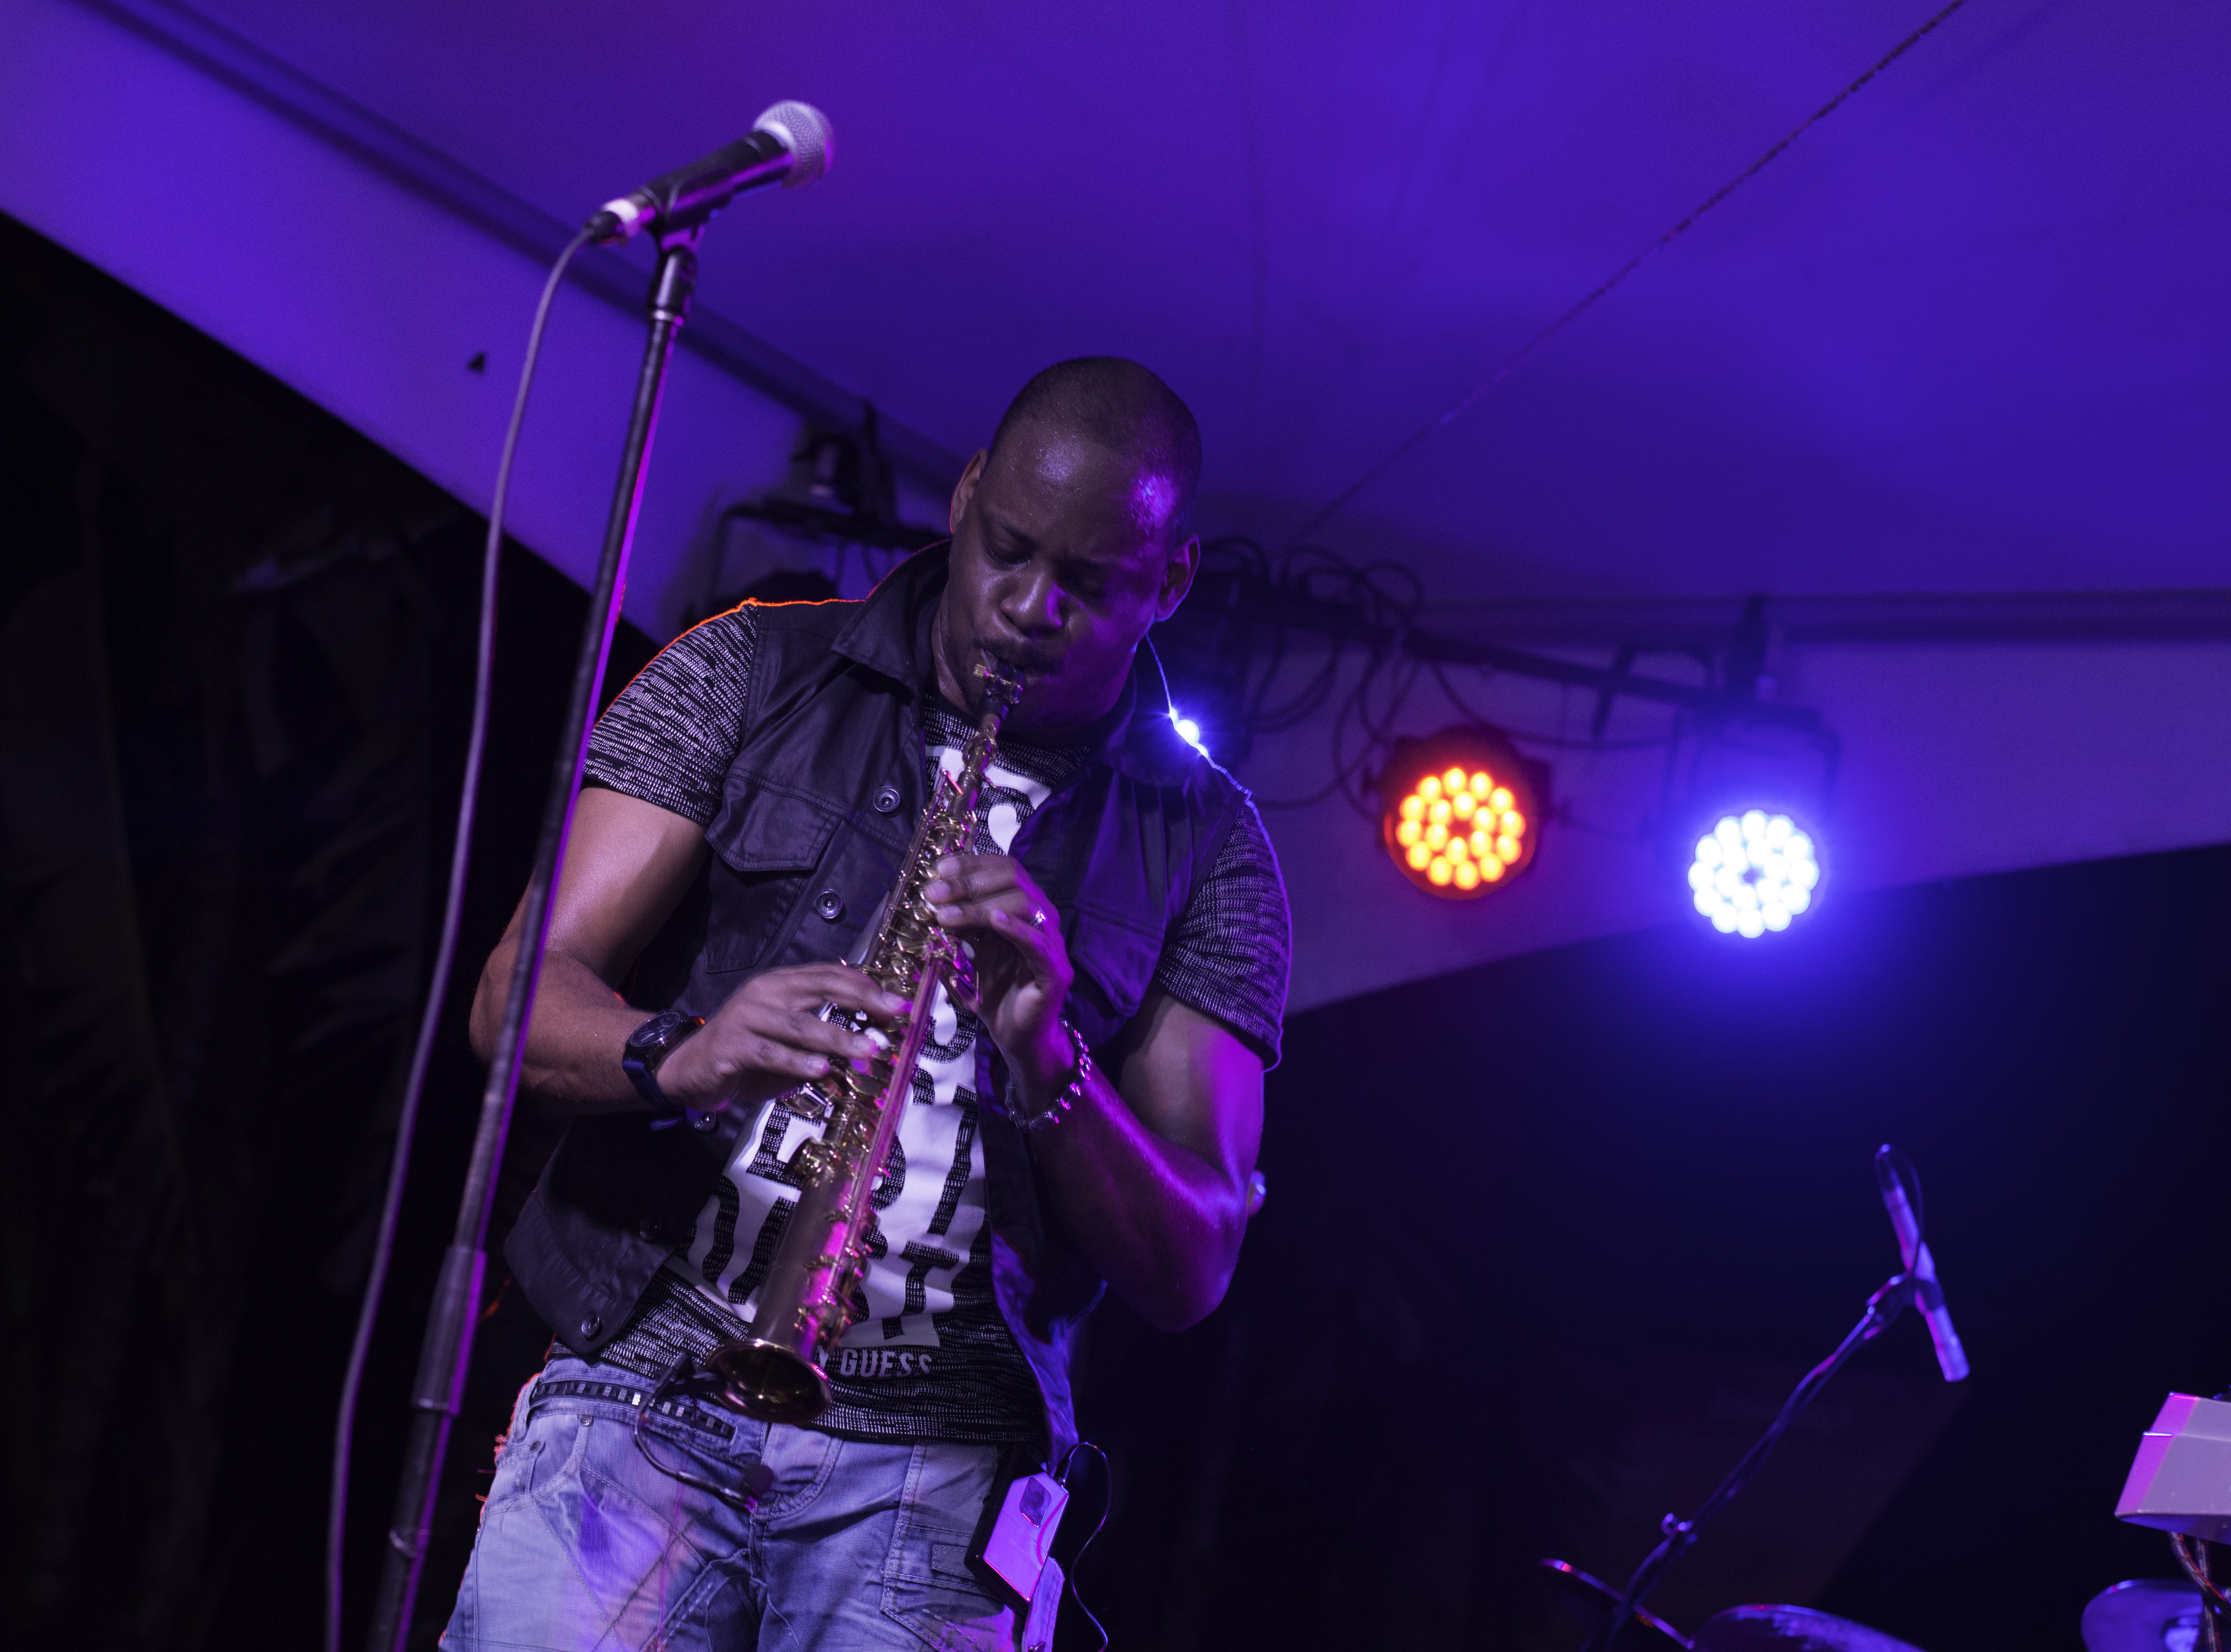 Jackiem Joyner and his band perform together at the Jazz Music Venue. His band were the highlight of the night for many who attended Jazzoo.